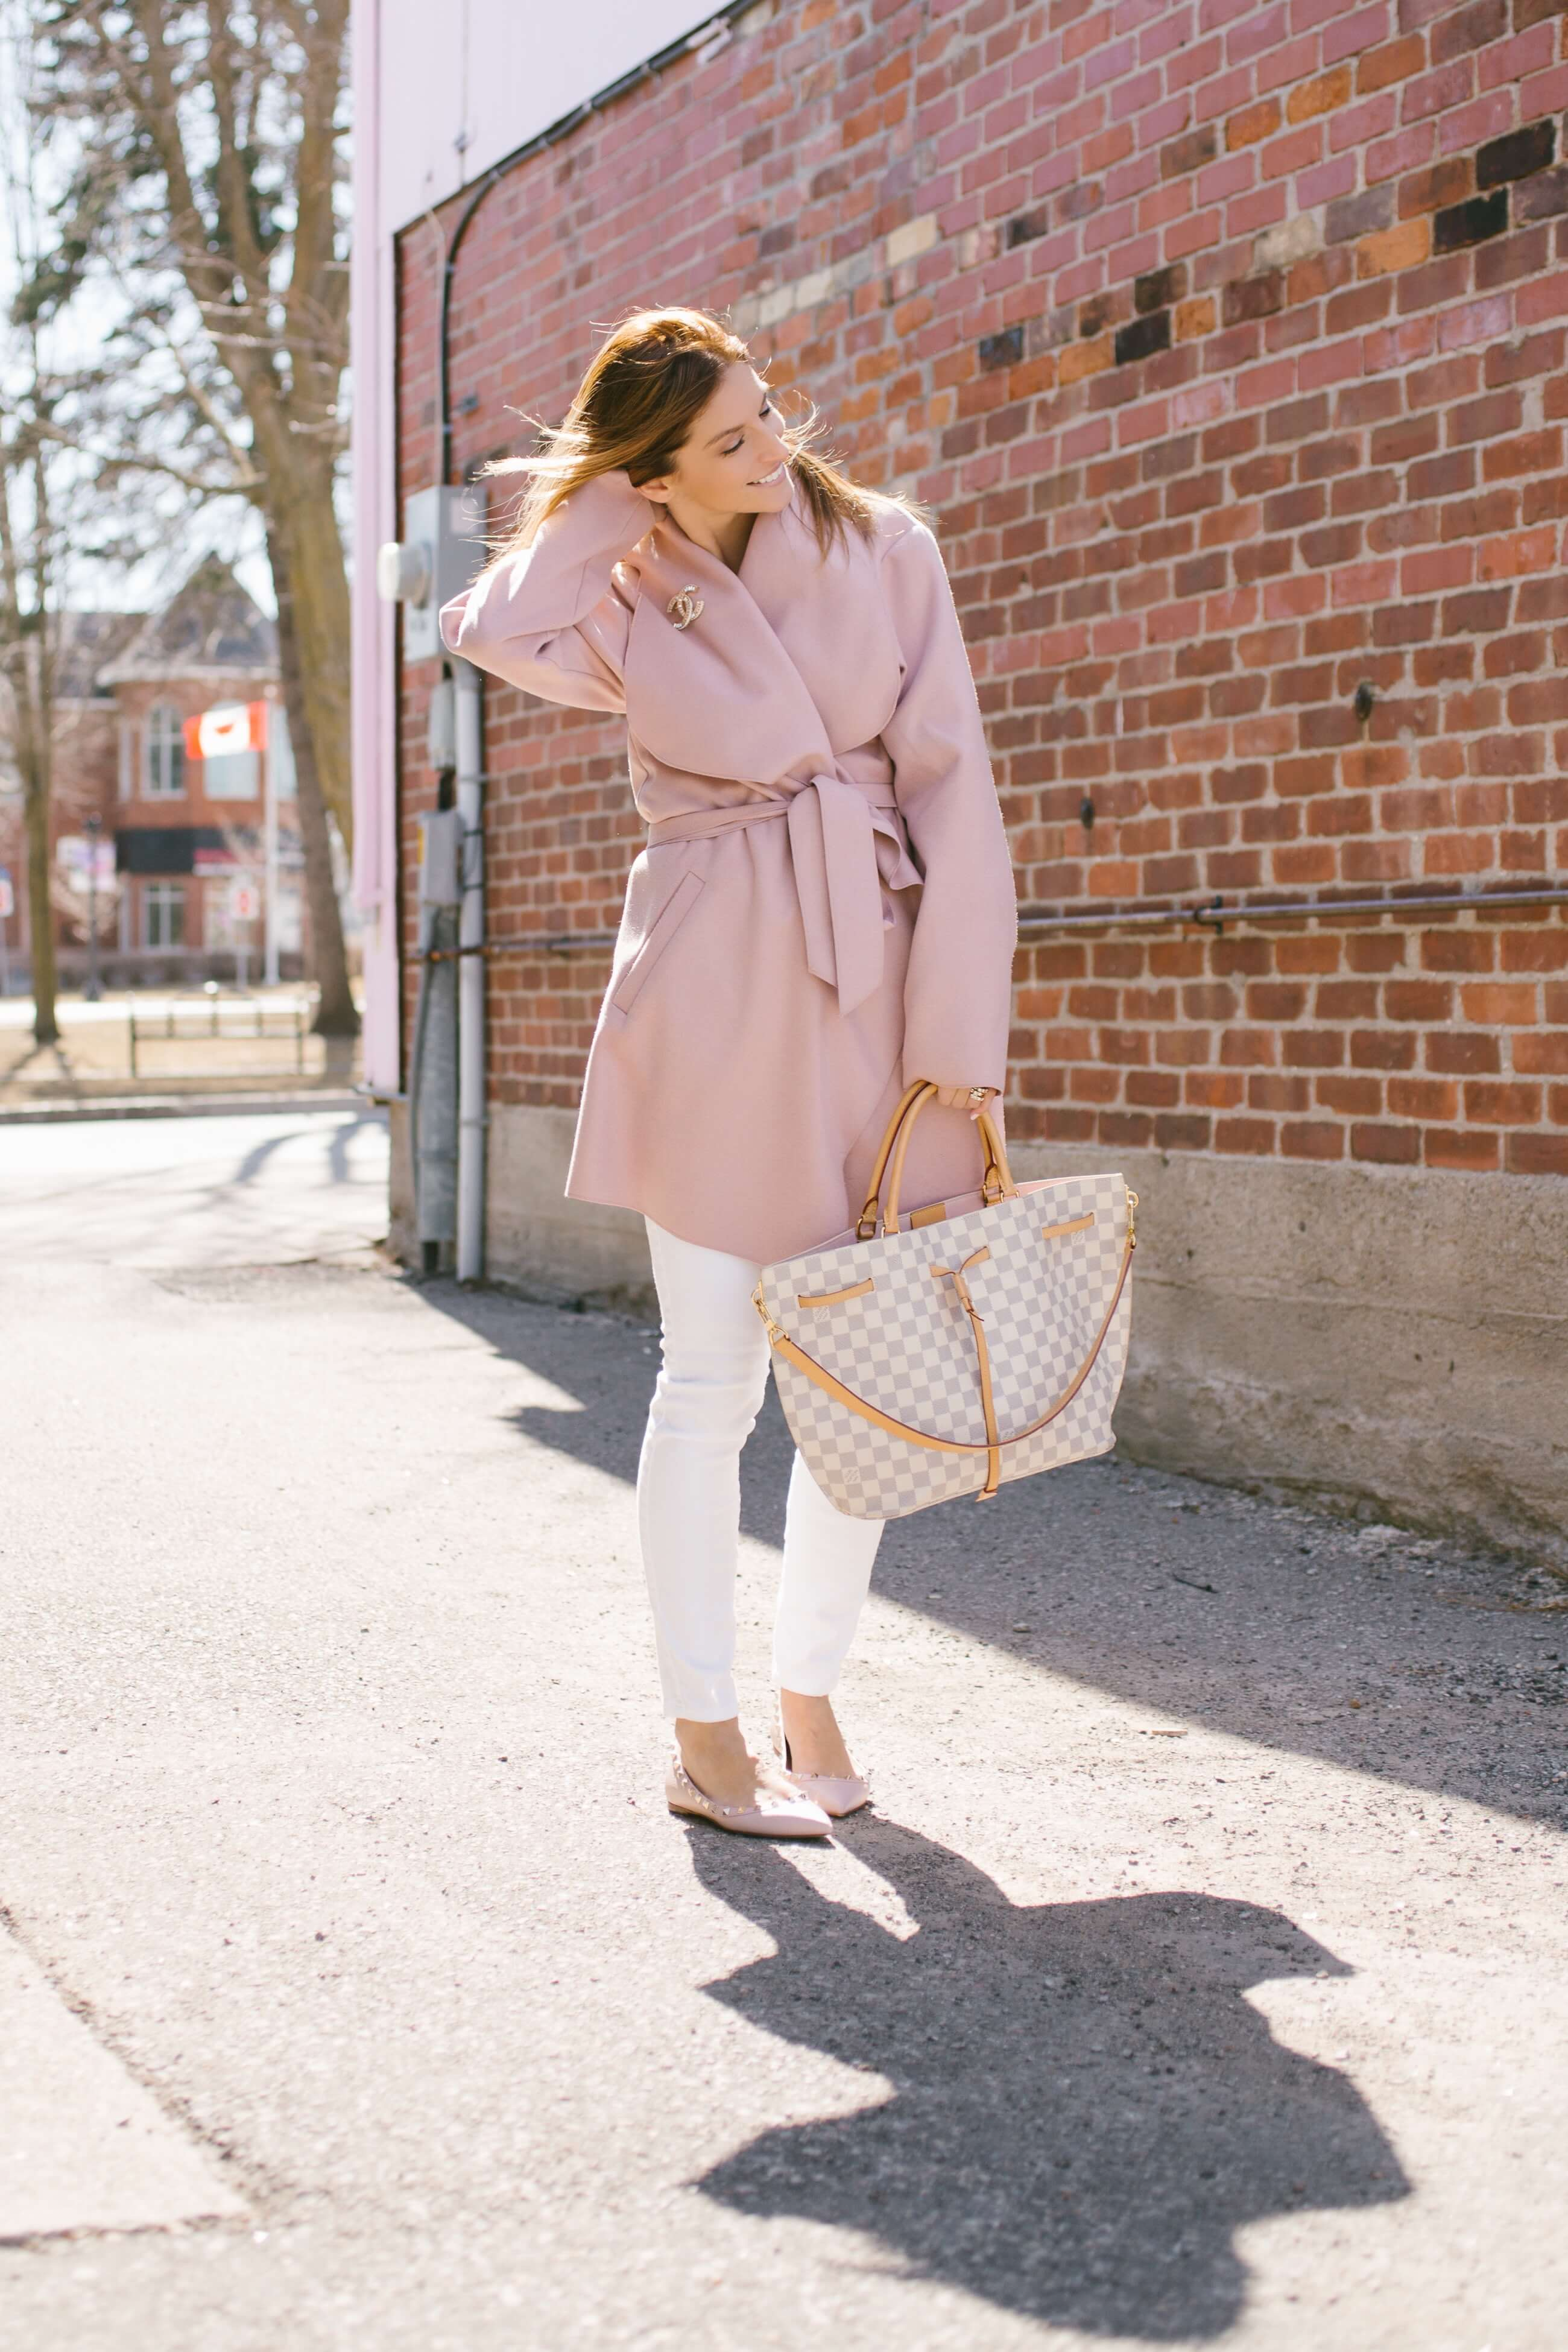 Pink Valentino rockstud flats, white seven for all mankind jeans, pink wrap coat, chanel broach, louis vuitton girolatta bag mandy furnis sparkleshinylove